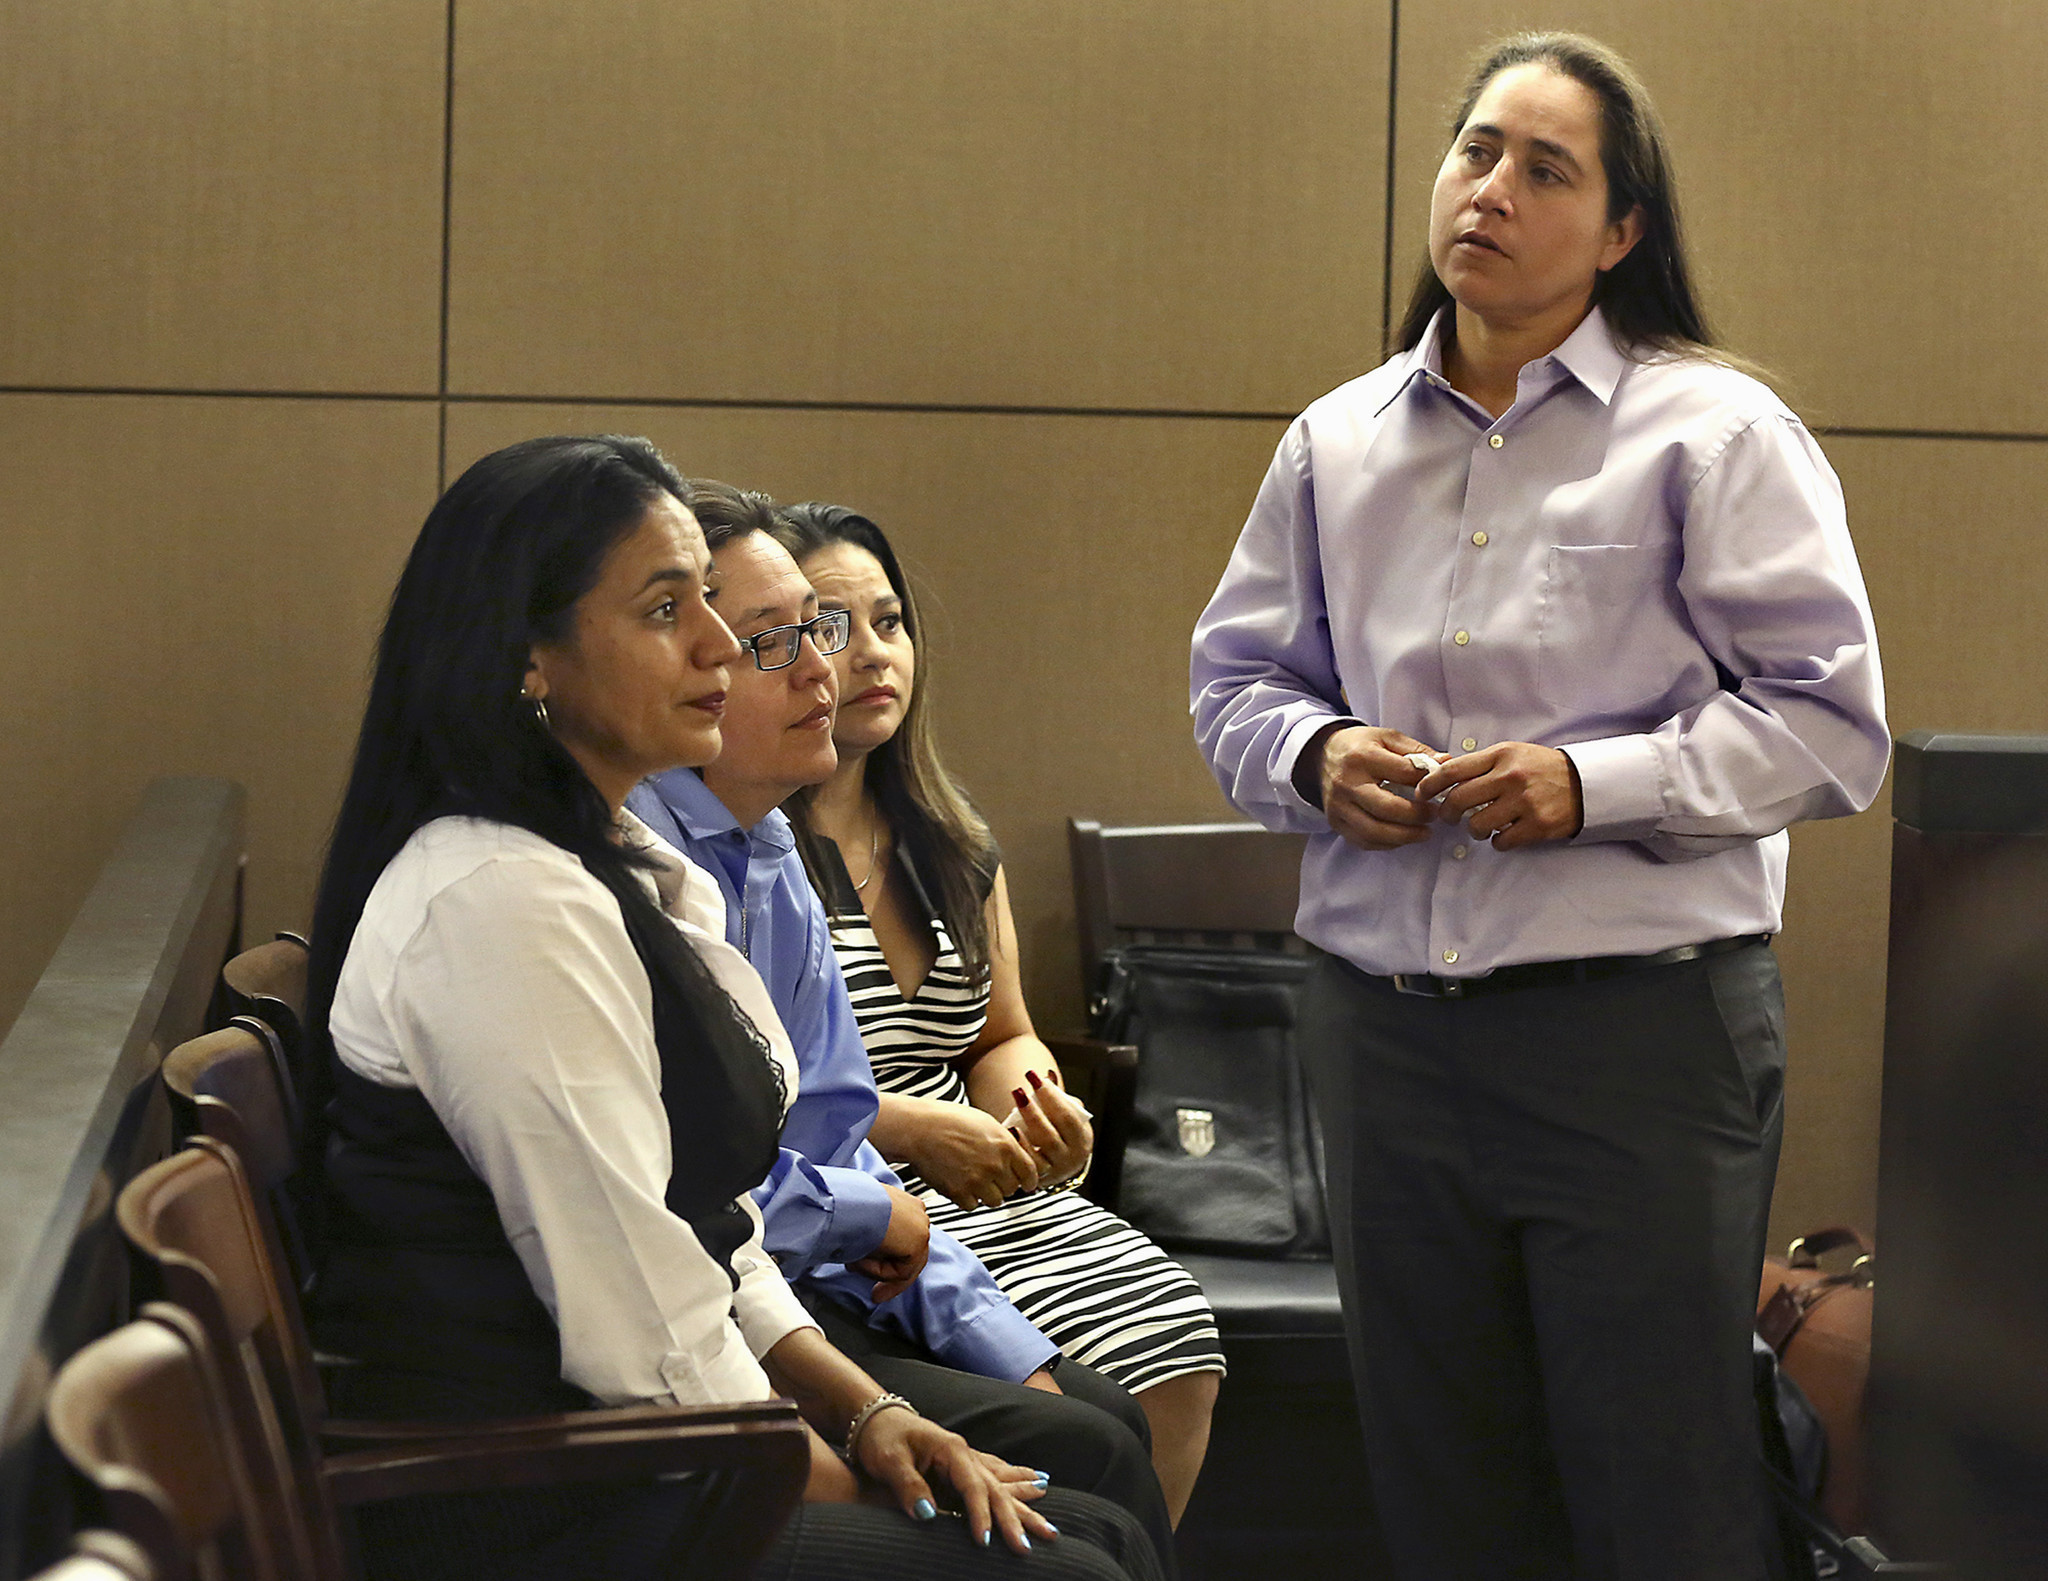 Women Known As San Antonio 4 Are Exonerated By Texas S